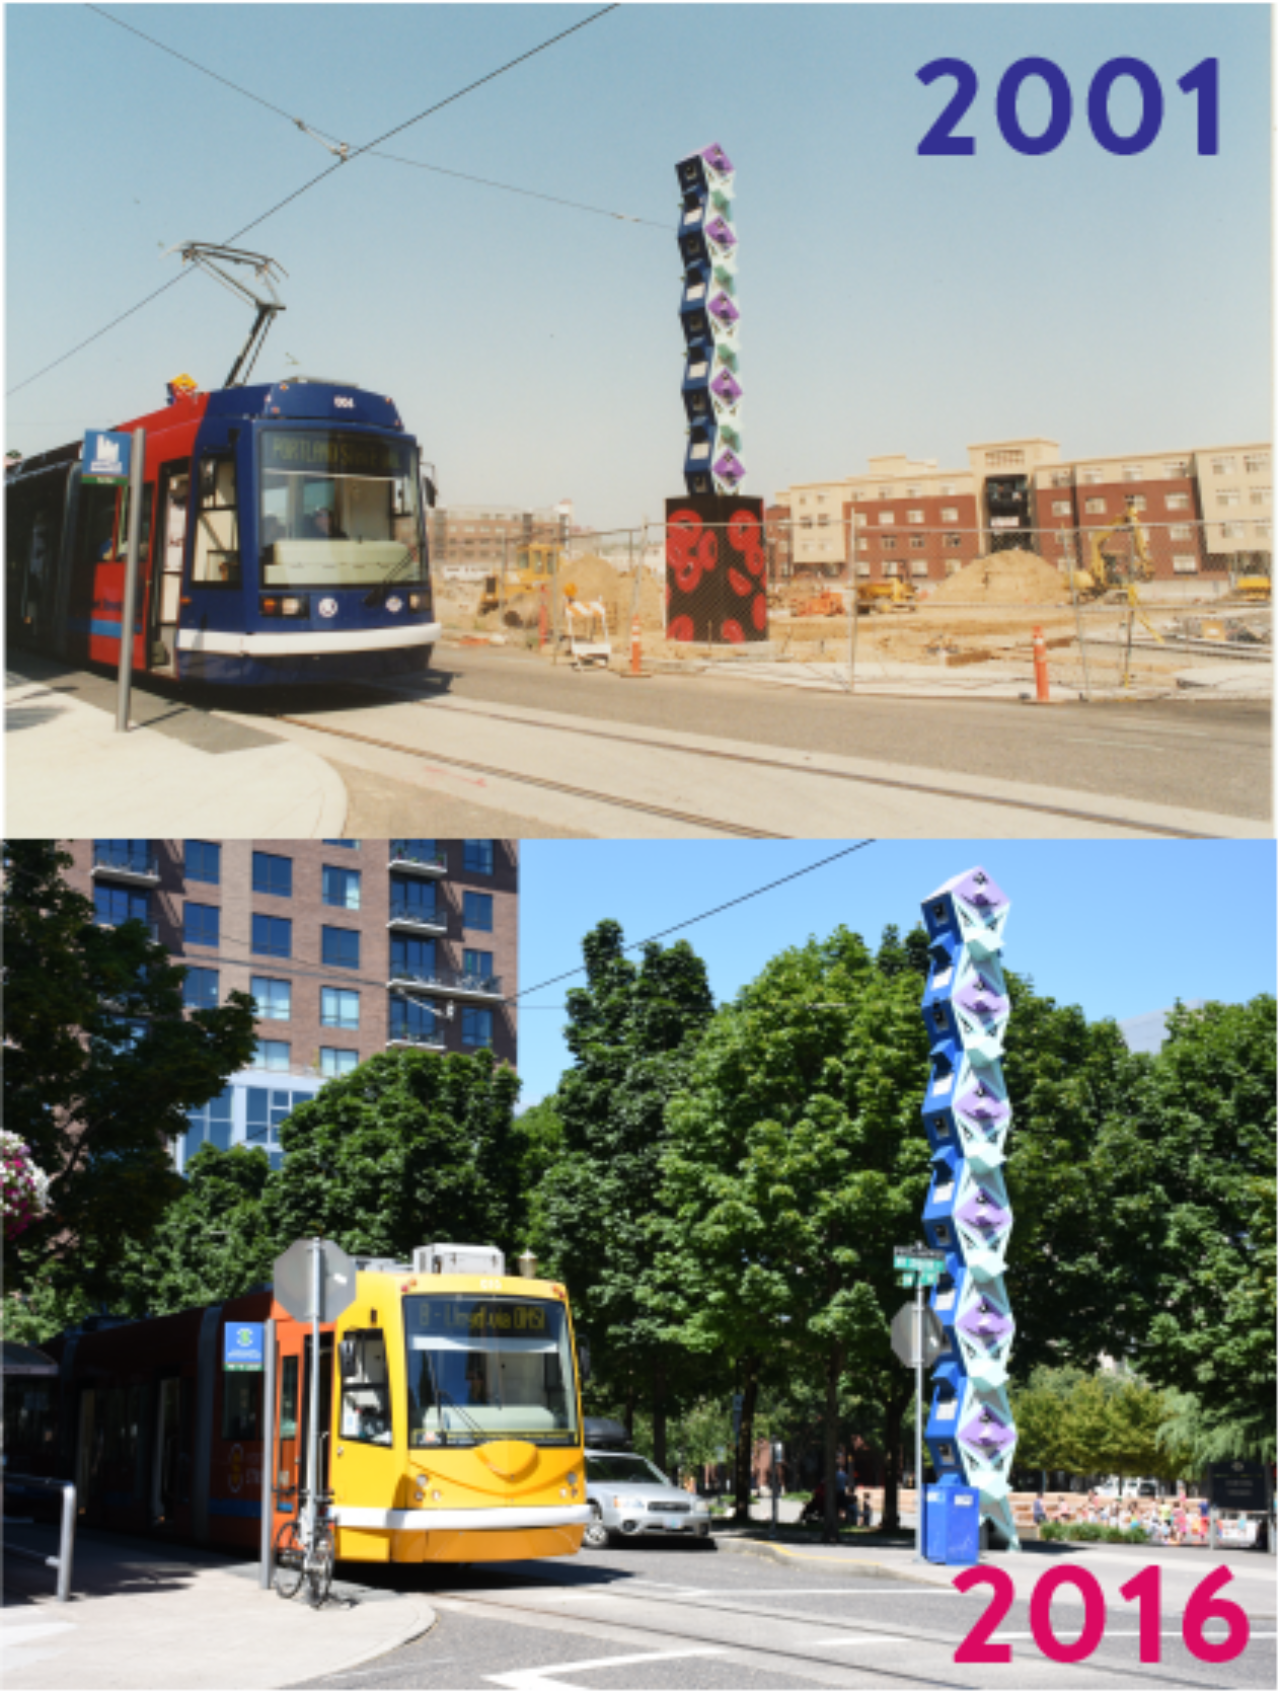 Then and Now: 2001 and 2016 Streetcar at Jamison Park